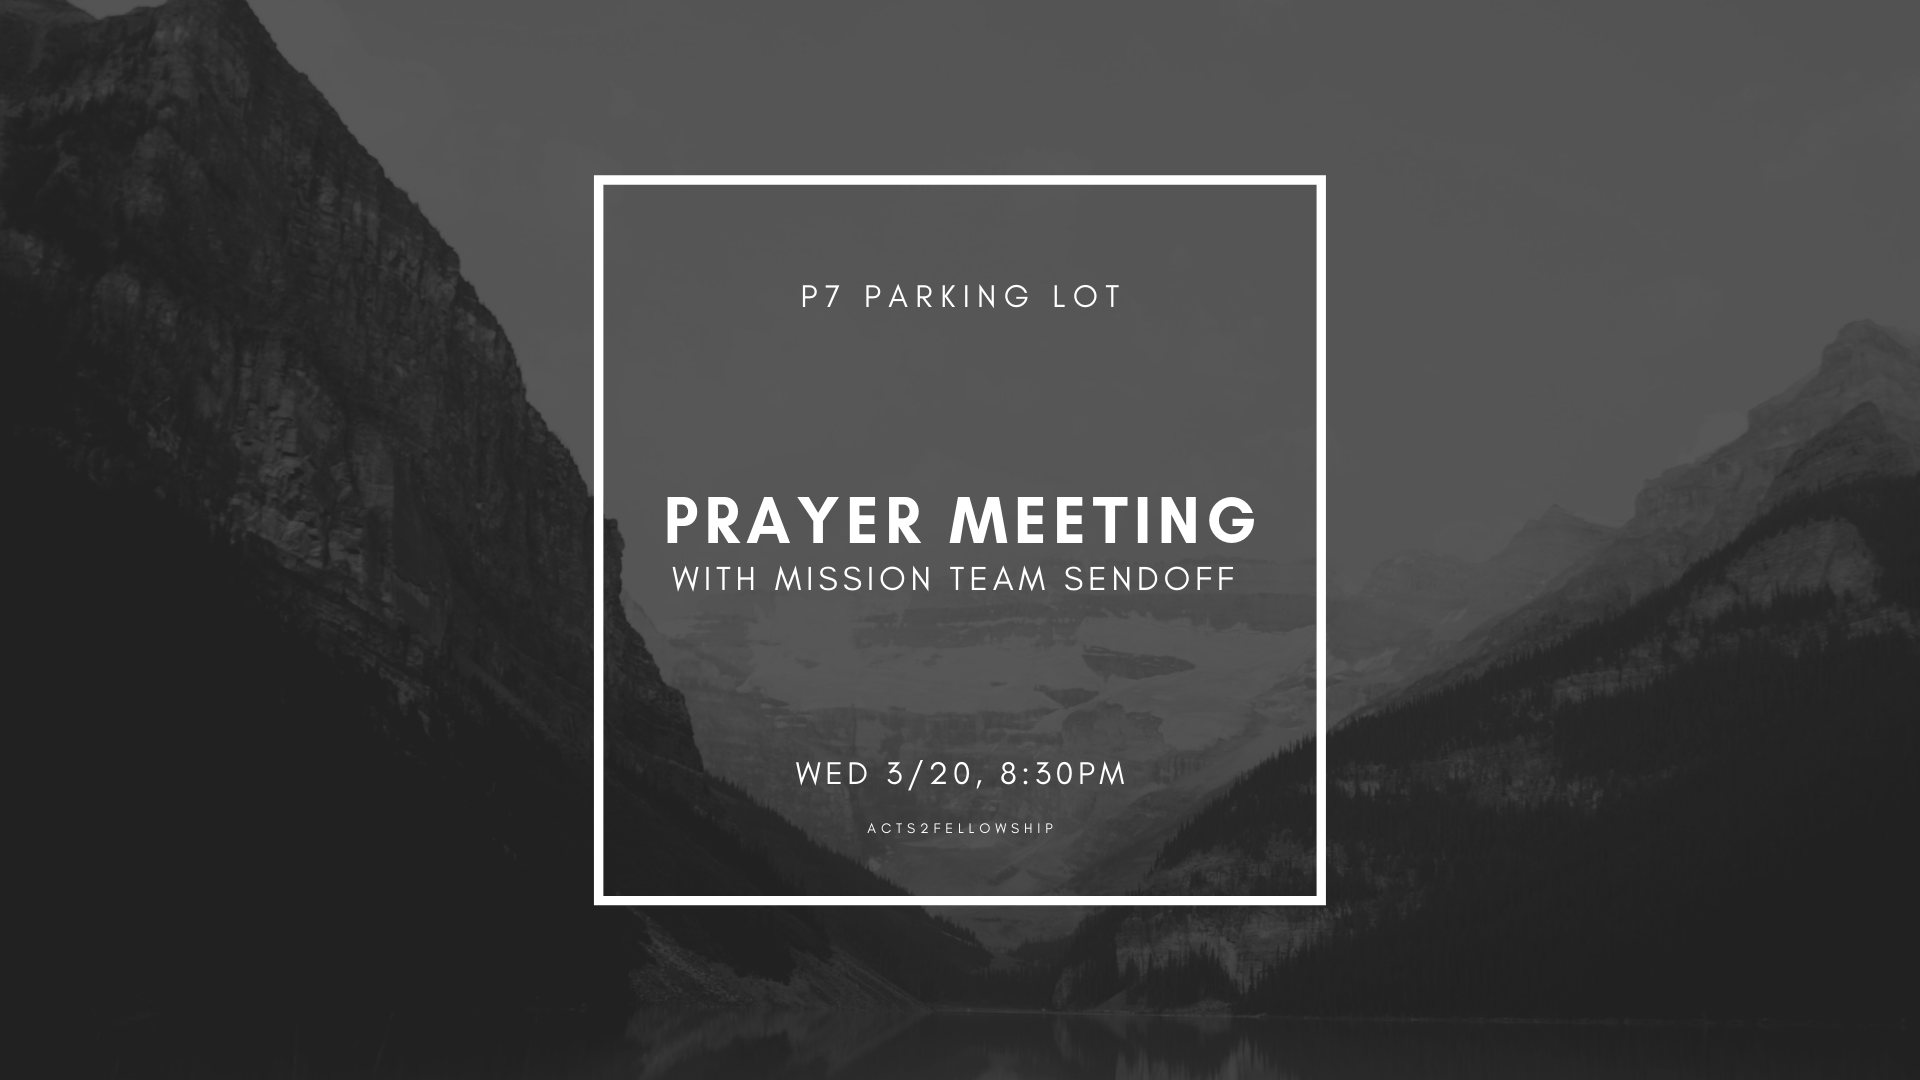 We'll be having final prayer meetings this quarter on Wednesday! Come and join us for a time of connecting with God and spiritual recharging. We will be meeting at  Parking Lot 7 - Bottom Floor  starting at  7:30PM .